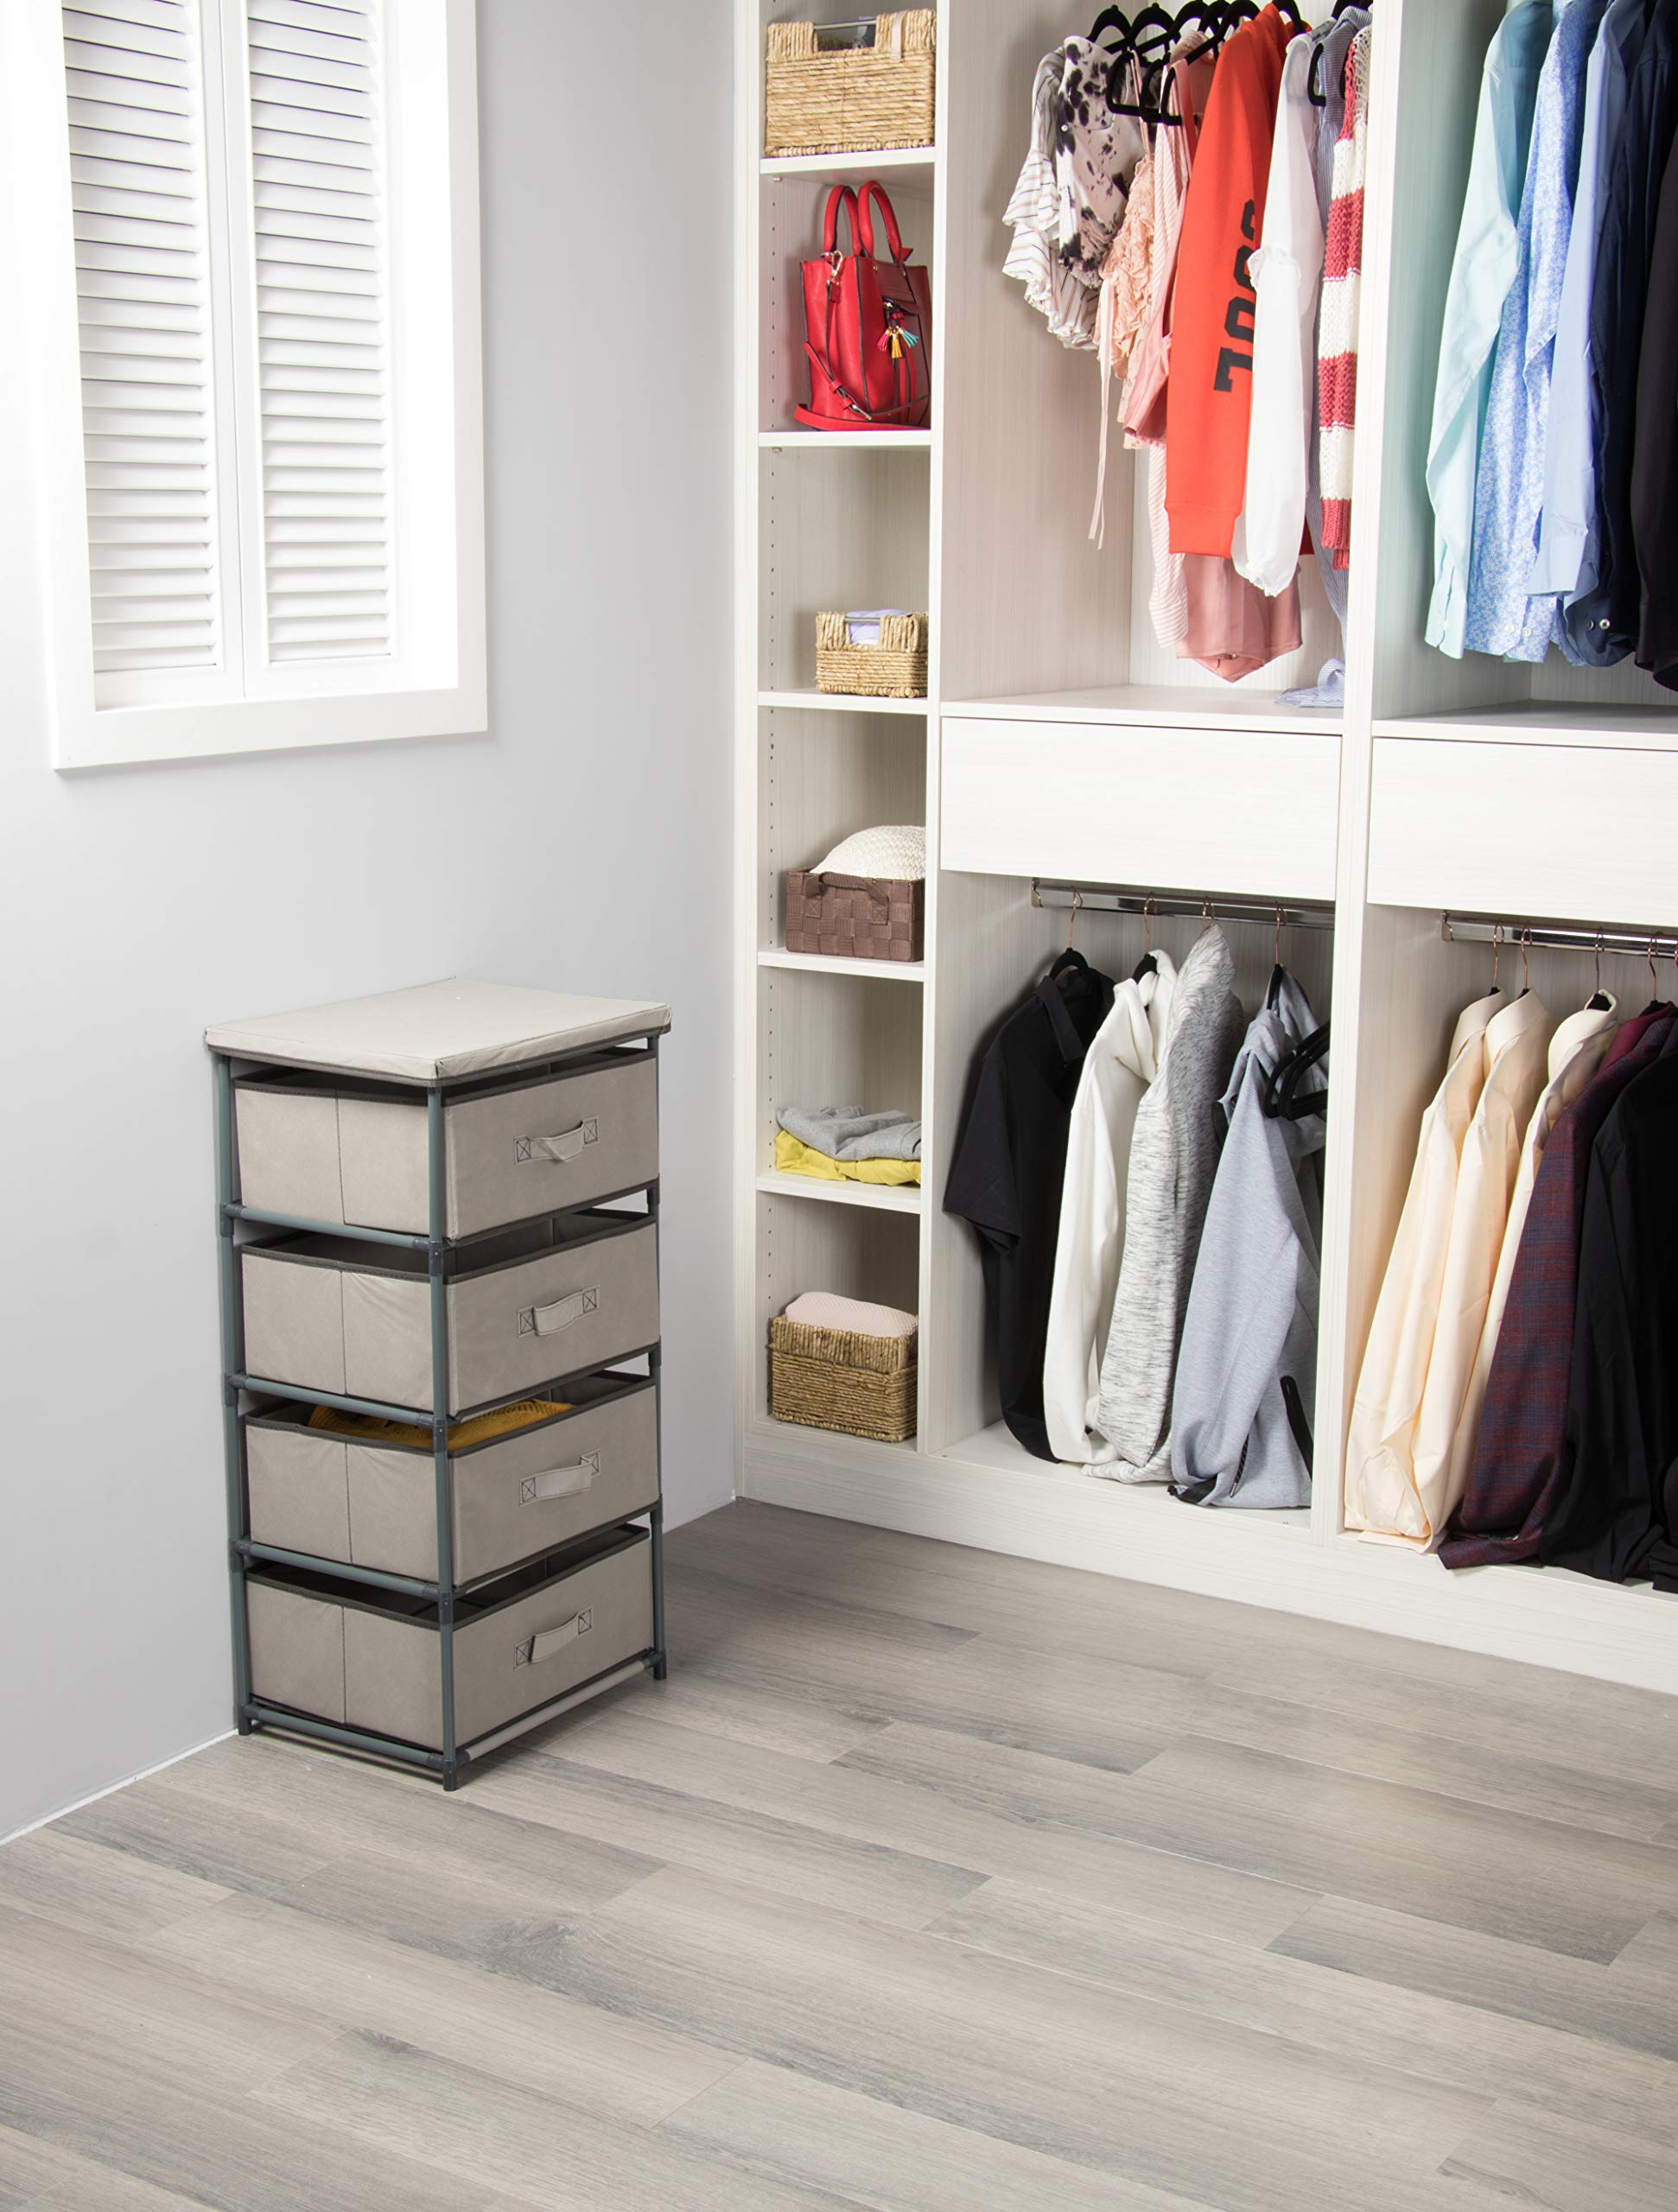 4-Tier Dresser Drawer Organizer